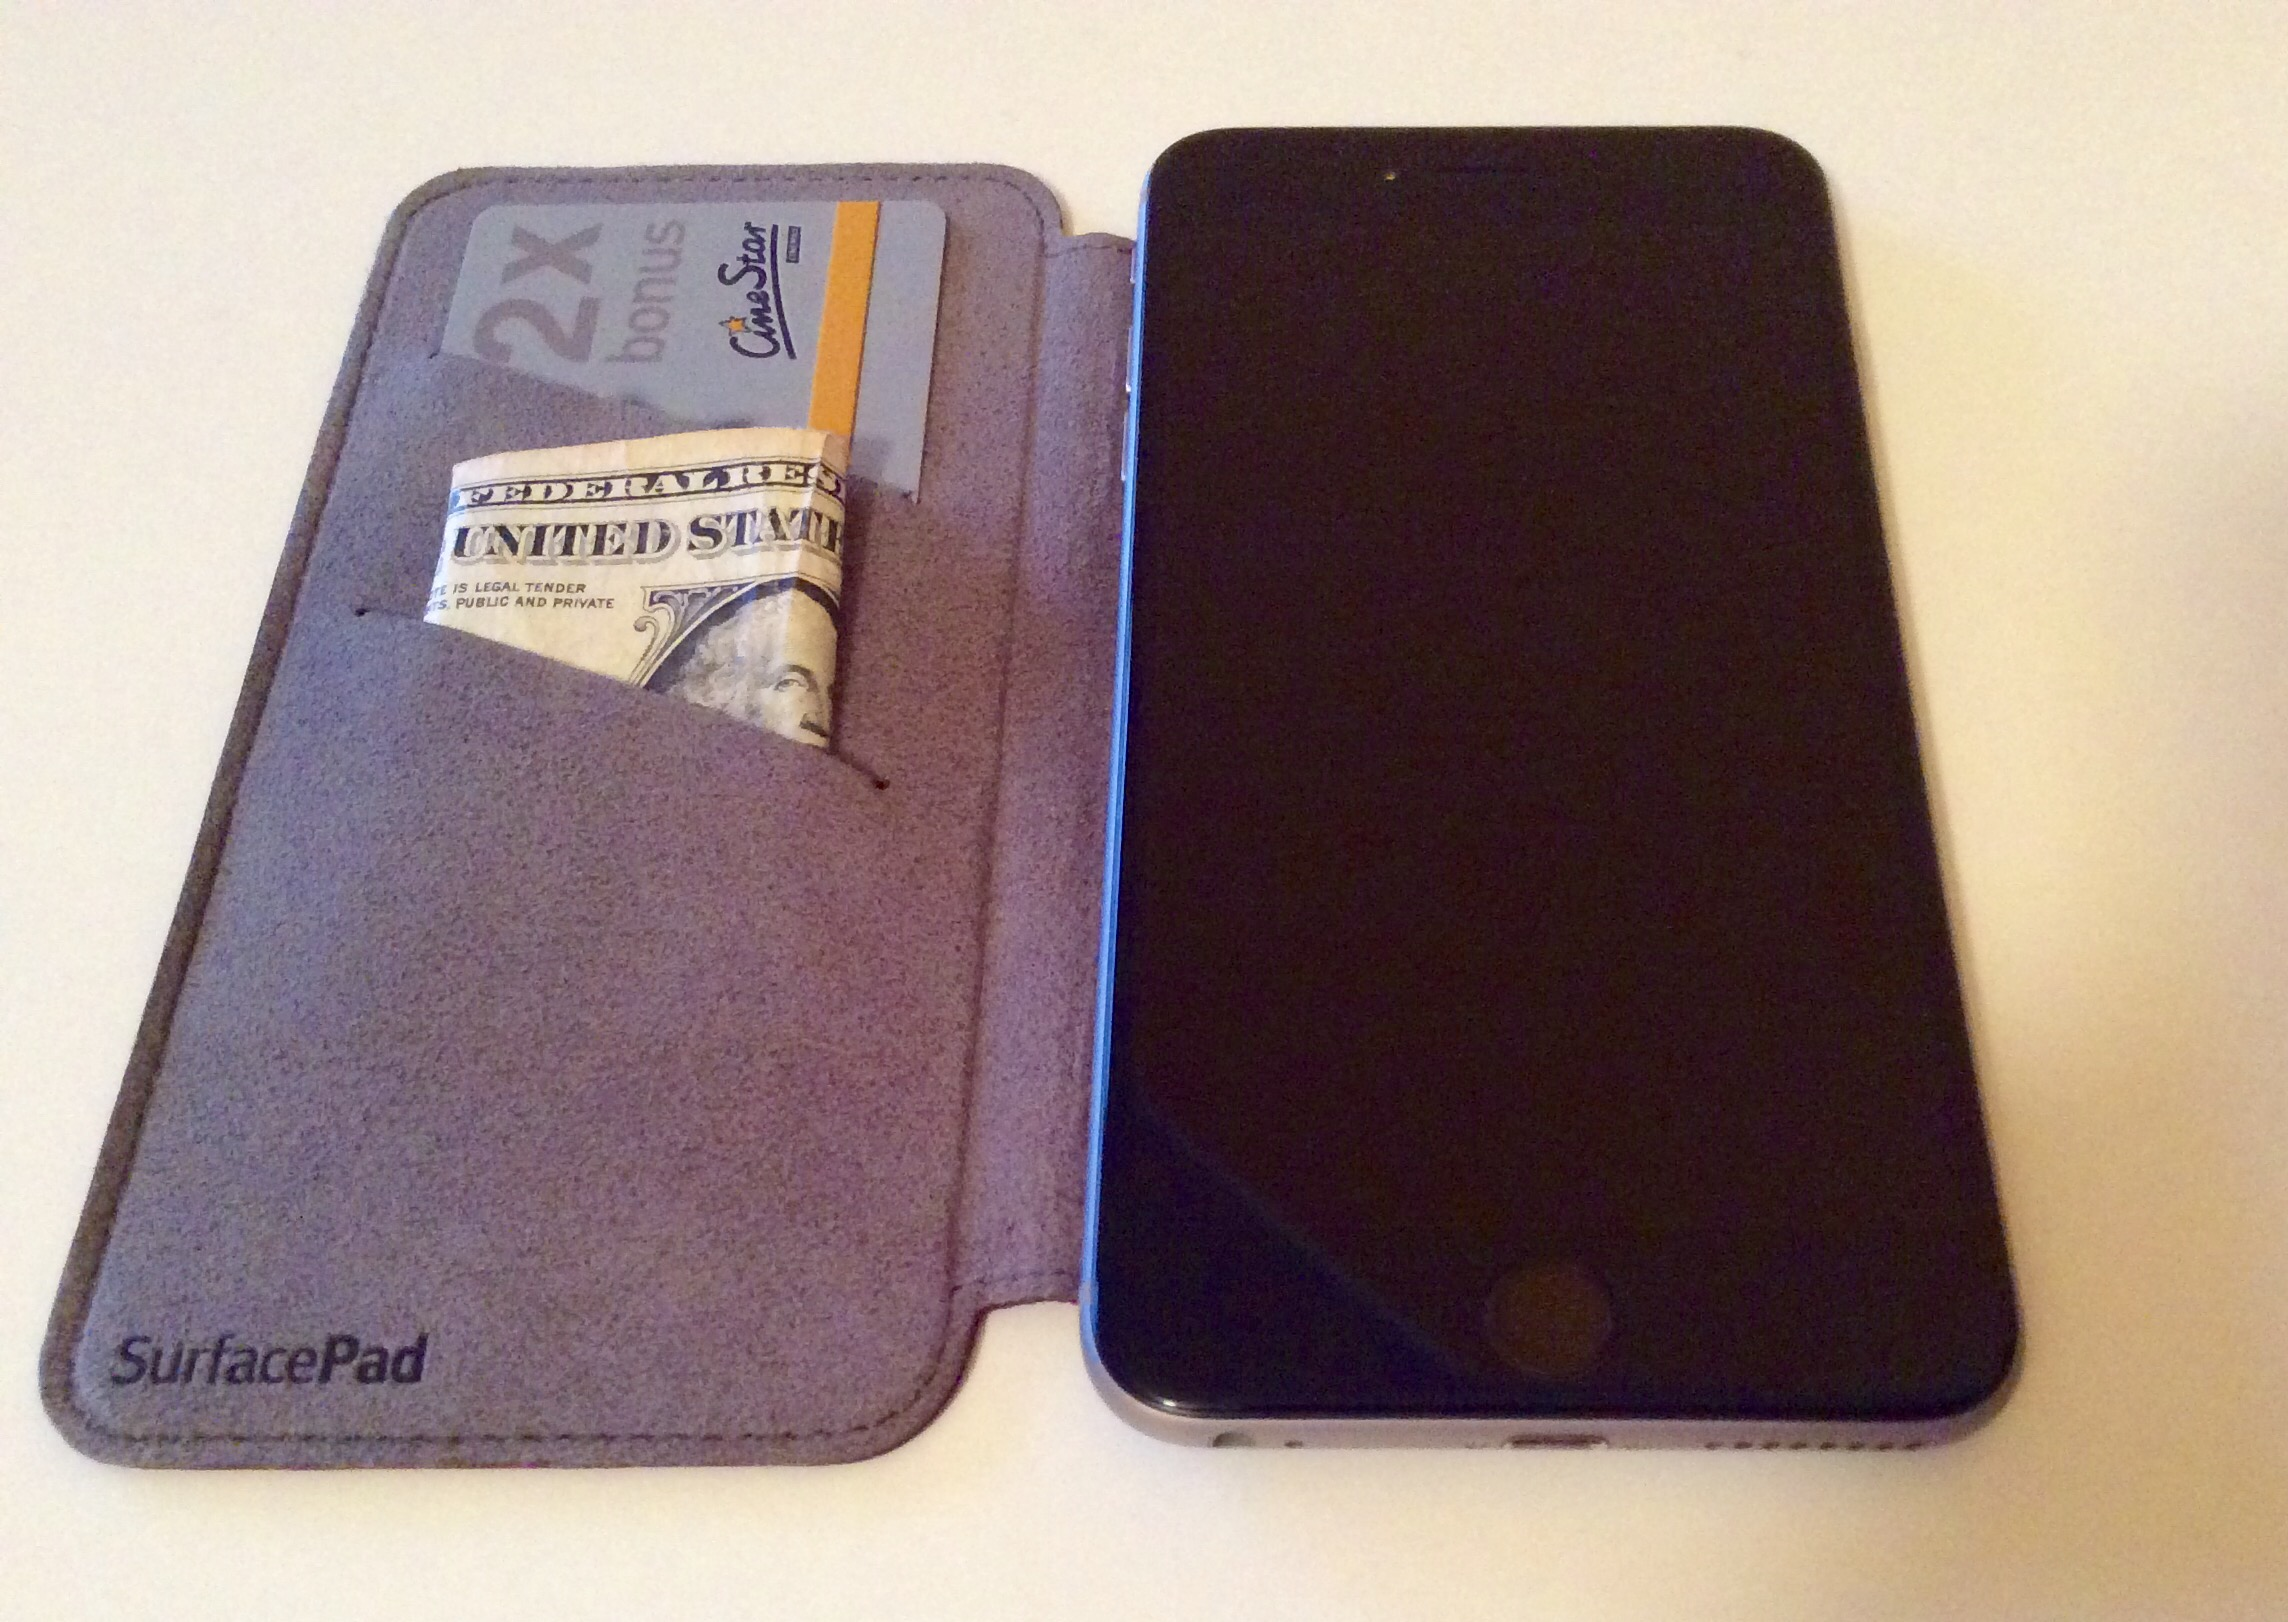 Twelve South SurfacePad for iPhone 6 Plus picture 00016